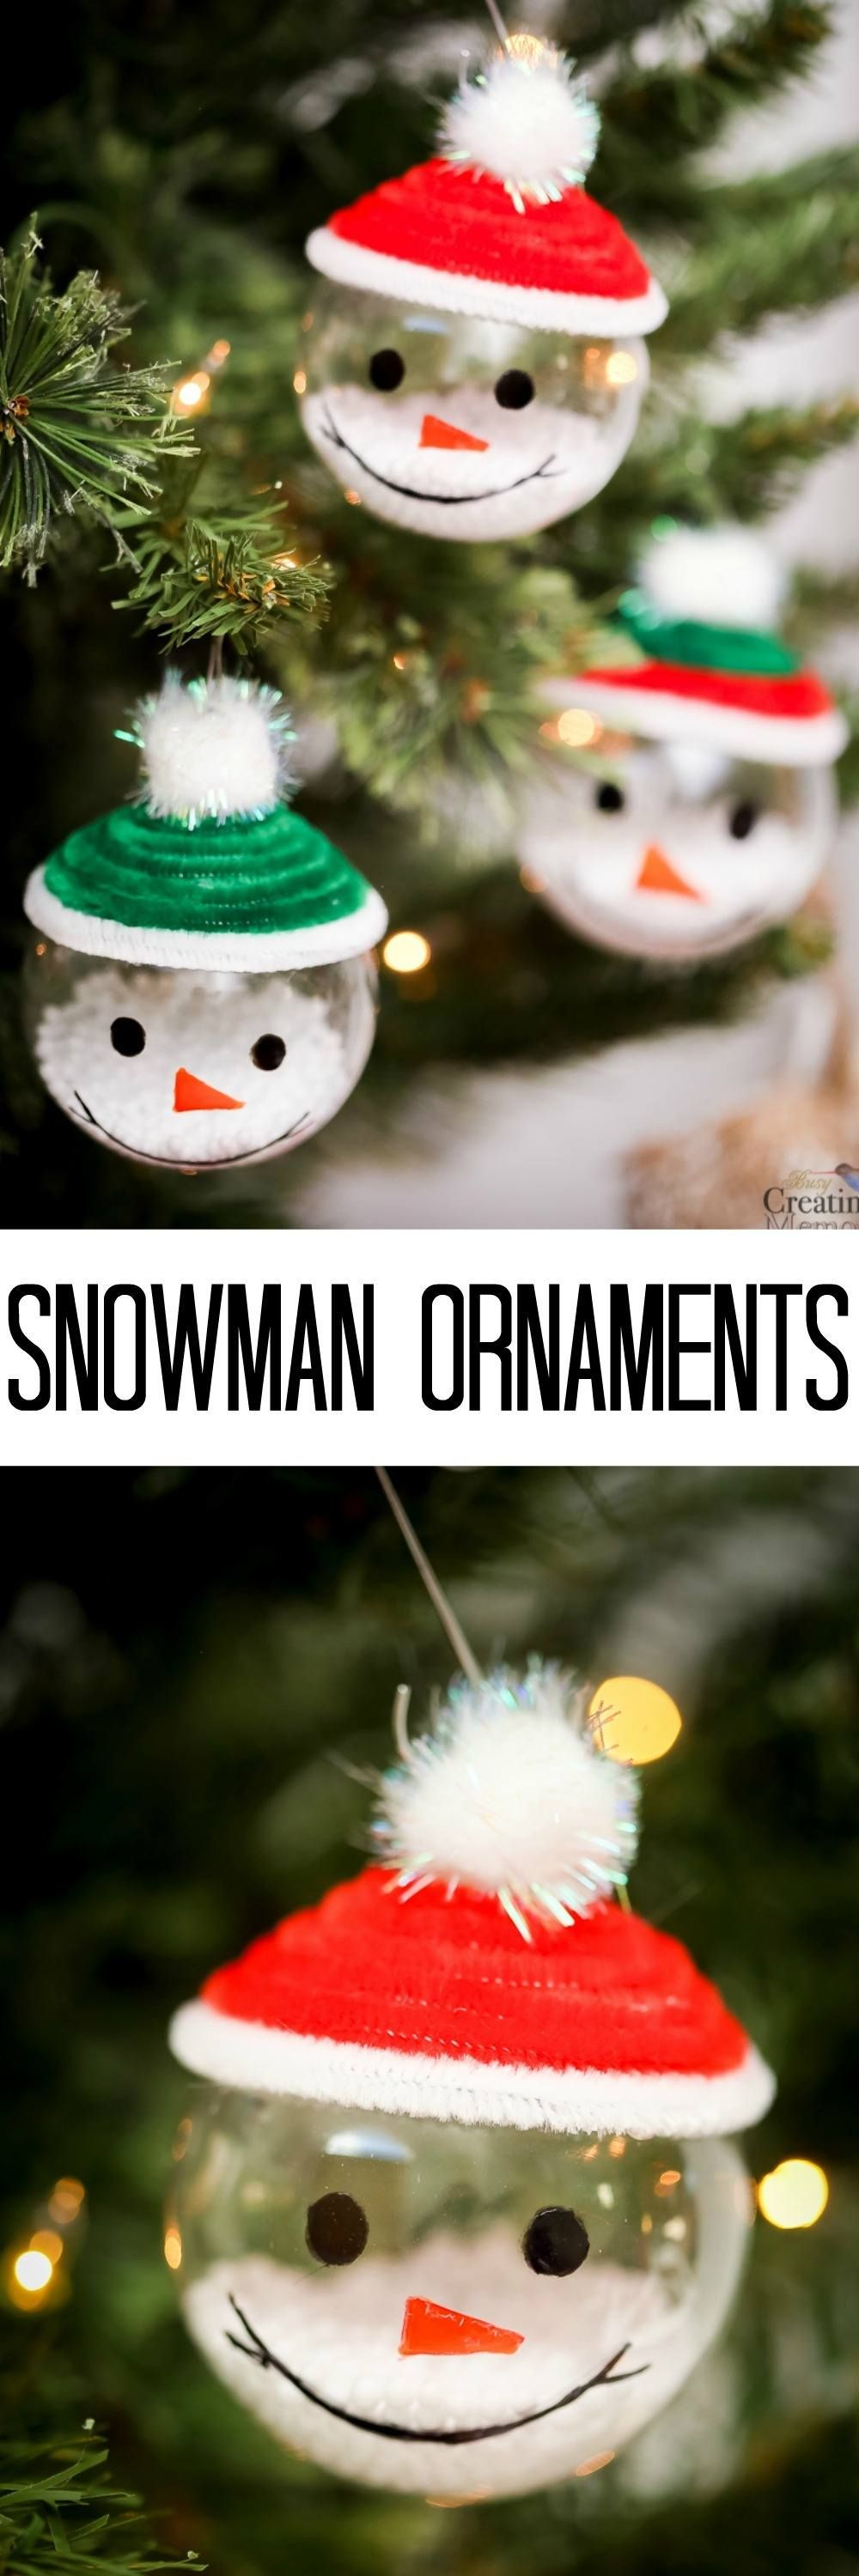 Making christmas ornaments with crayons - Bring Winter Indoors By Decorating With These Easy Snowman Ornaments About 5 Minutes To Make